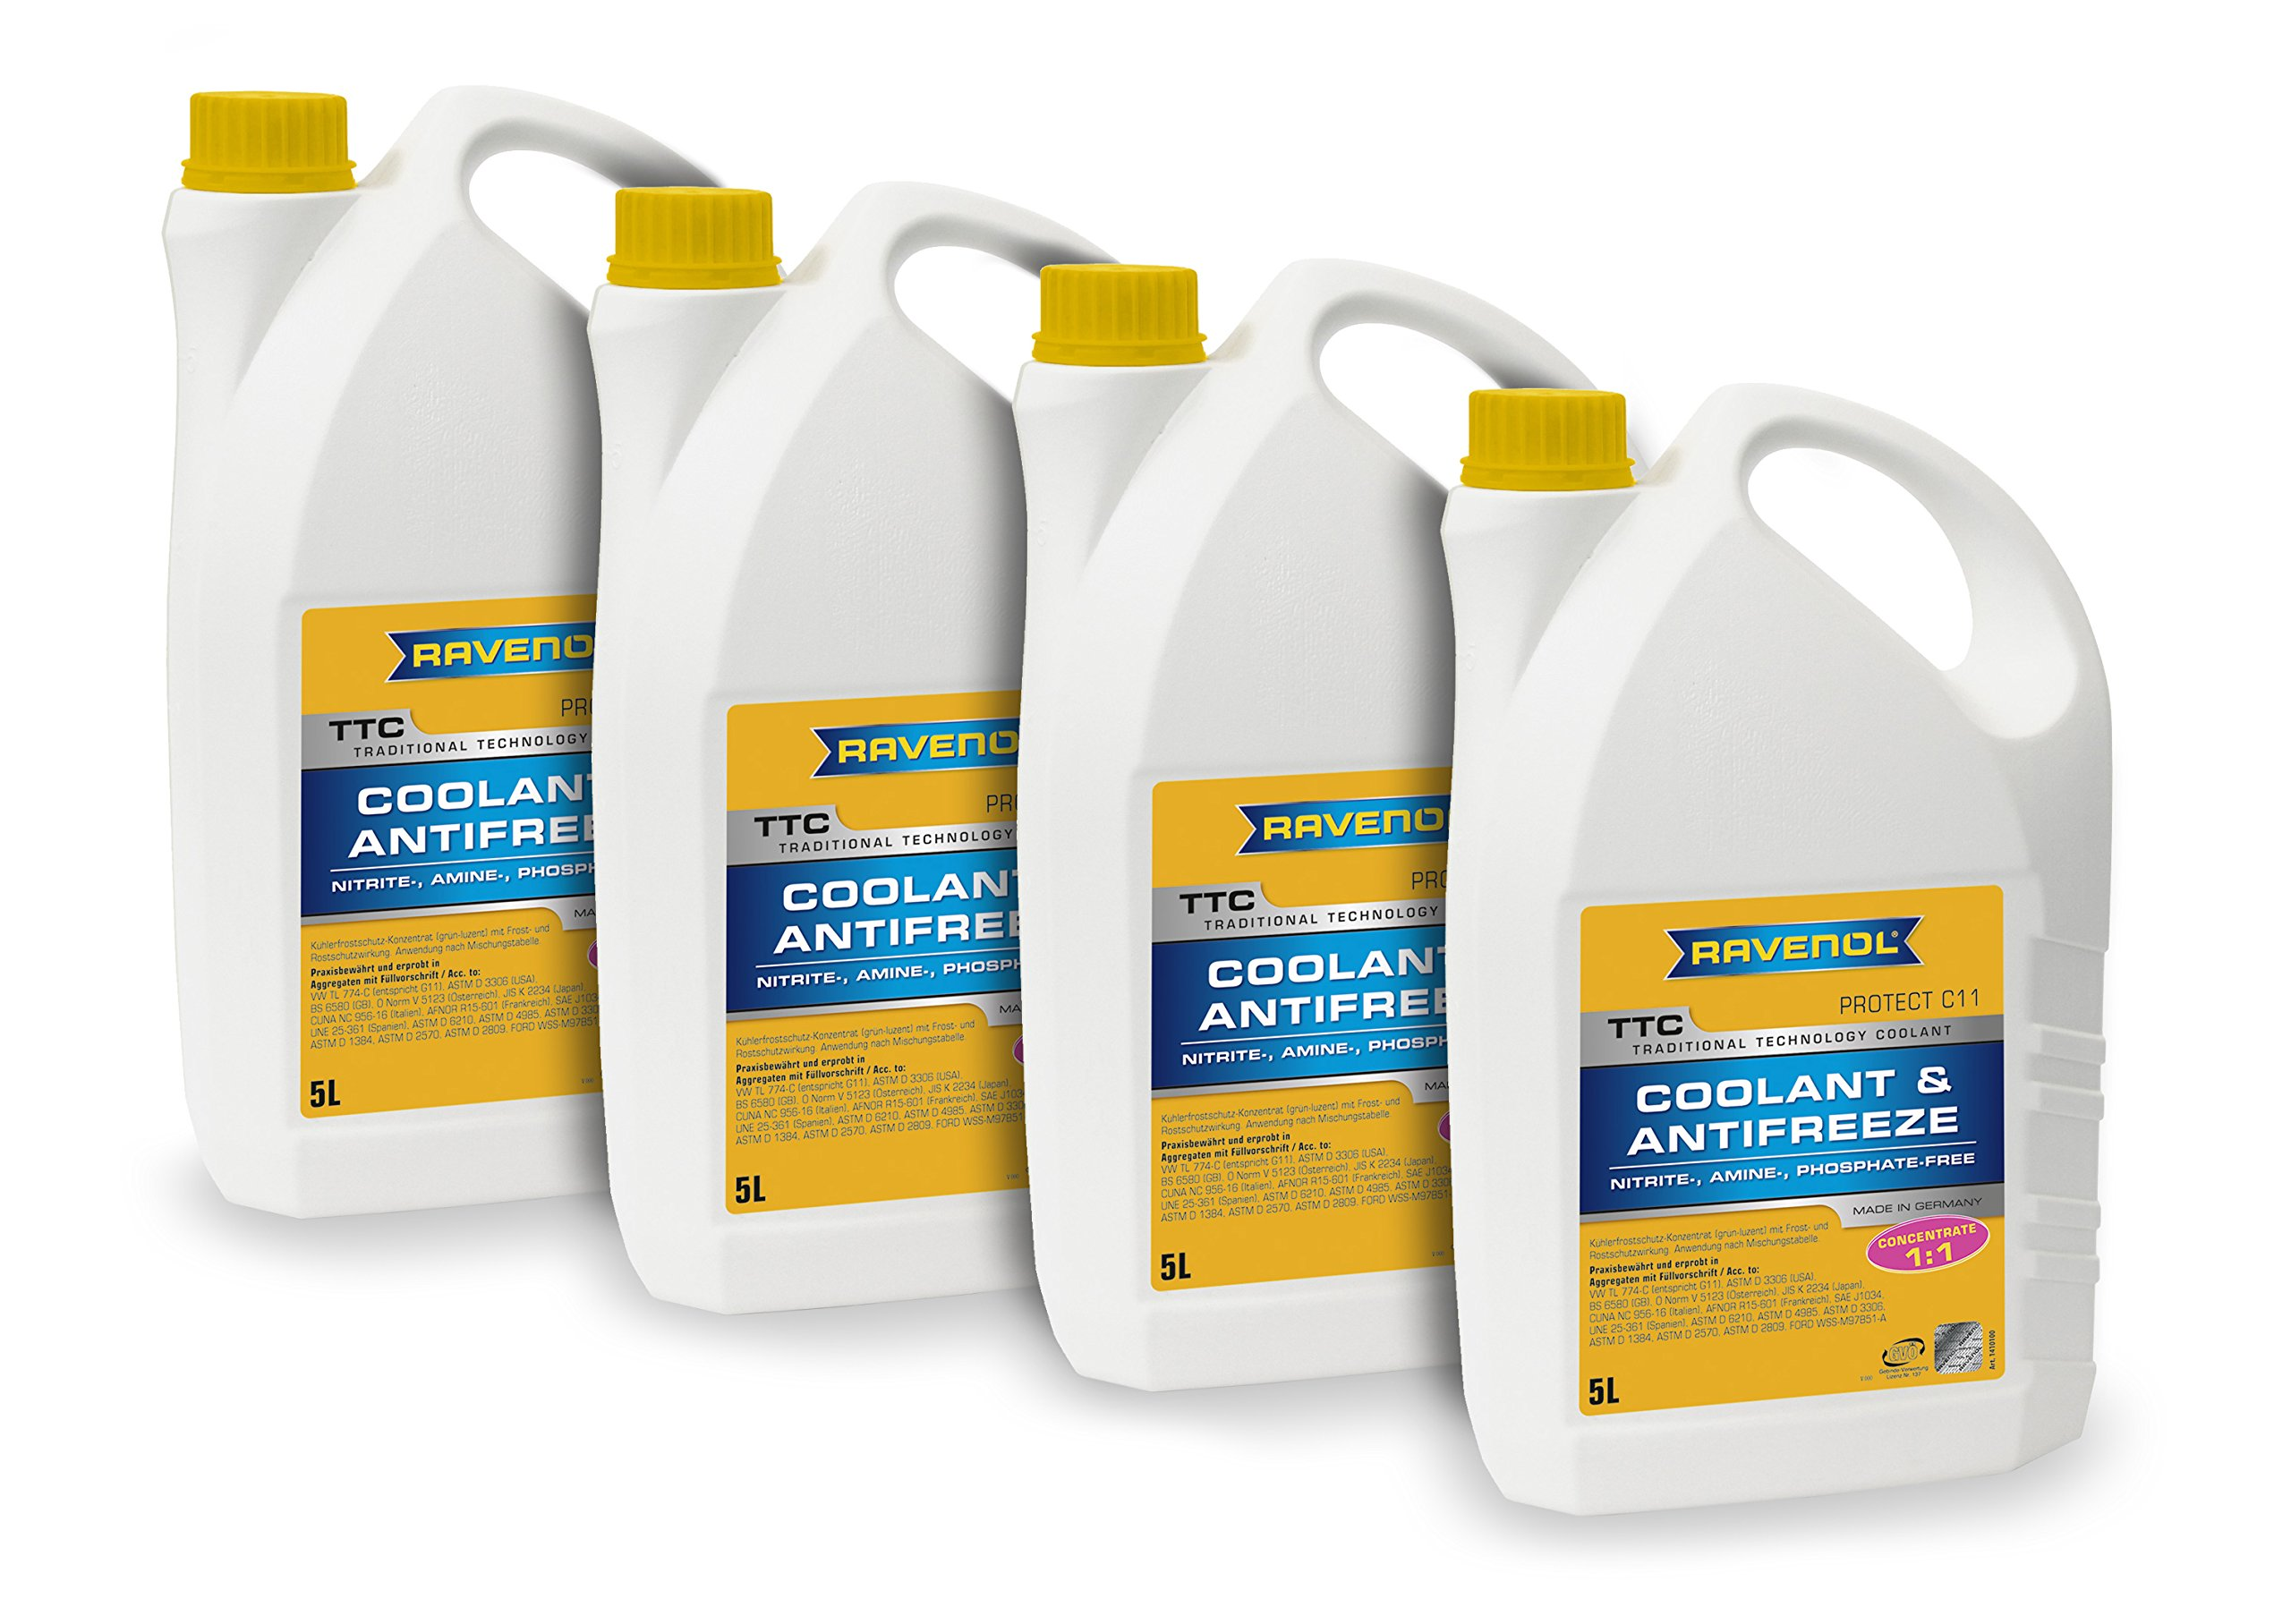 RAVENOL J4D2078-04 Coolant Antifreeze - TTC Concentrate C11, VW TL 774-C (G11) (5L, Case of 4) by Ravenol